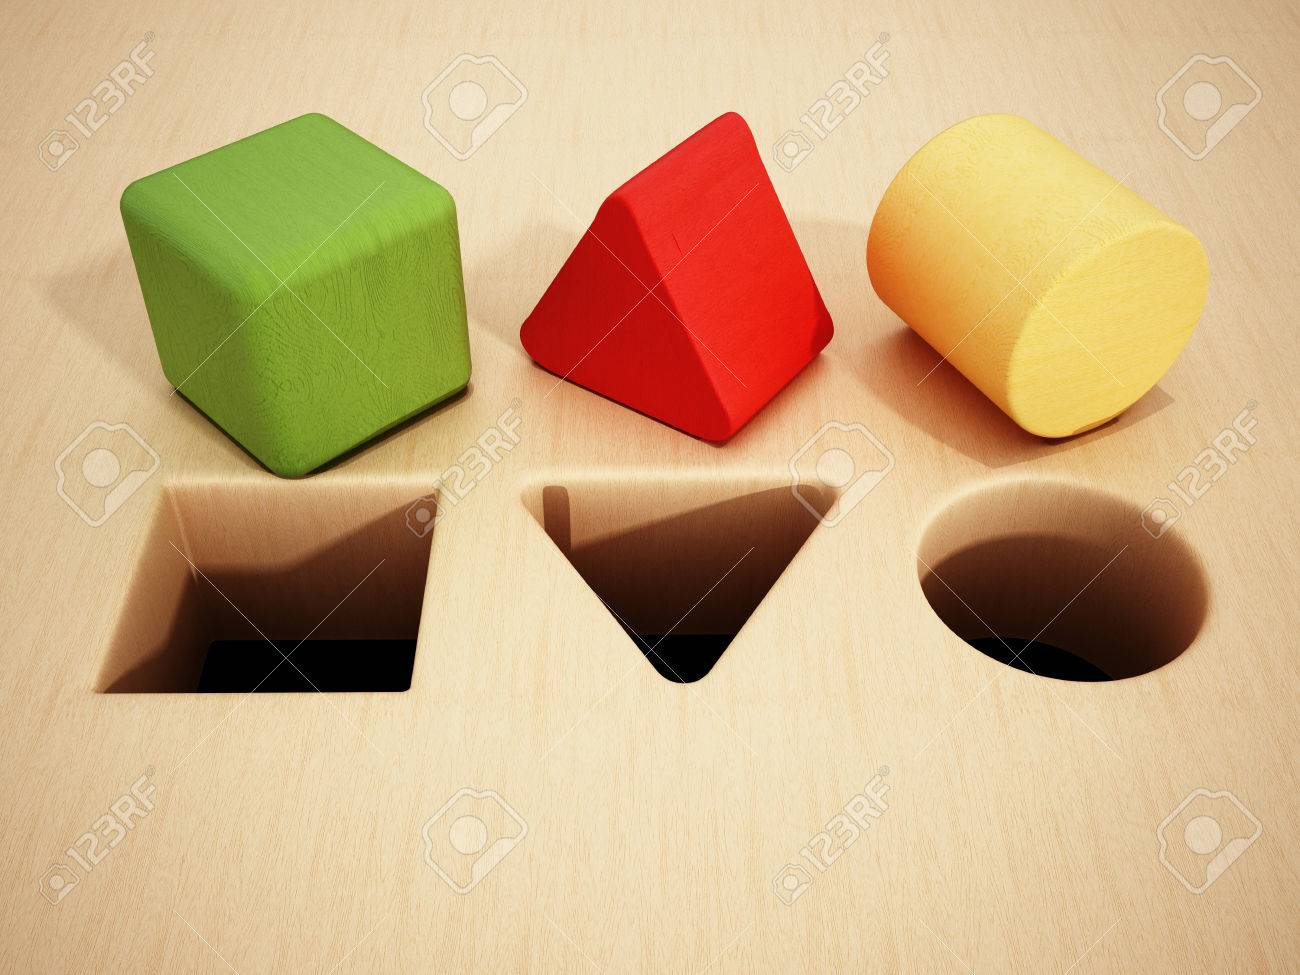 Cube, prism and cylinder wooden blocks in front of holes. 3D illustration. Stock Illustration - 61035756